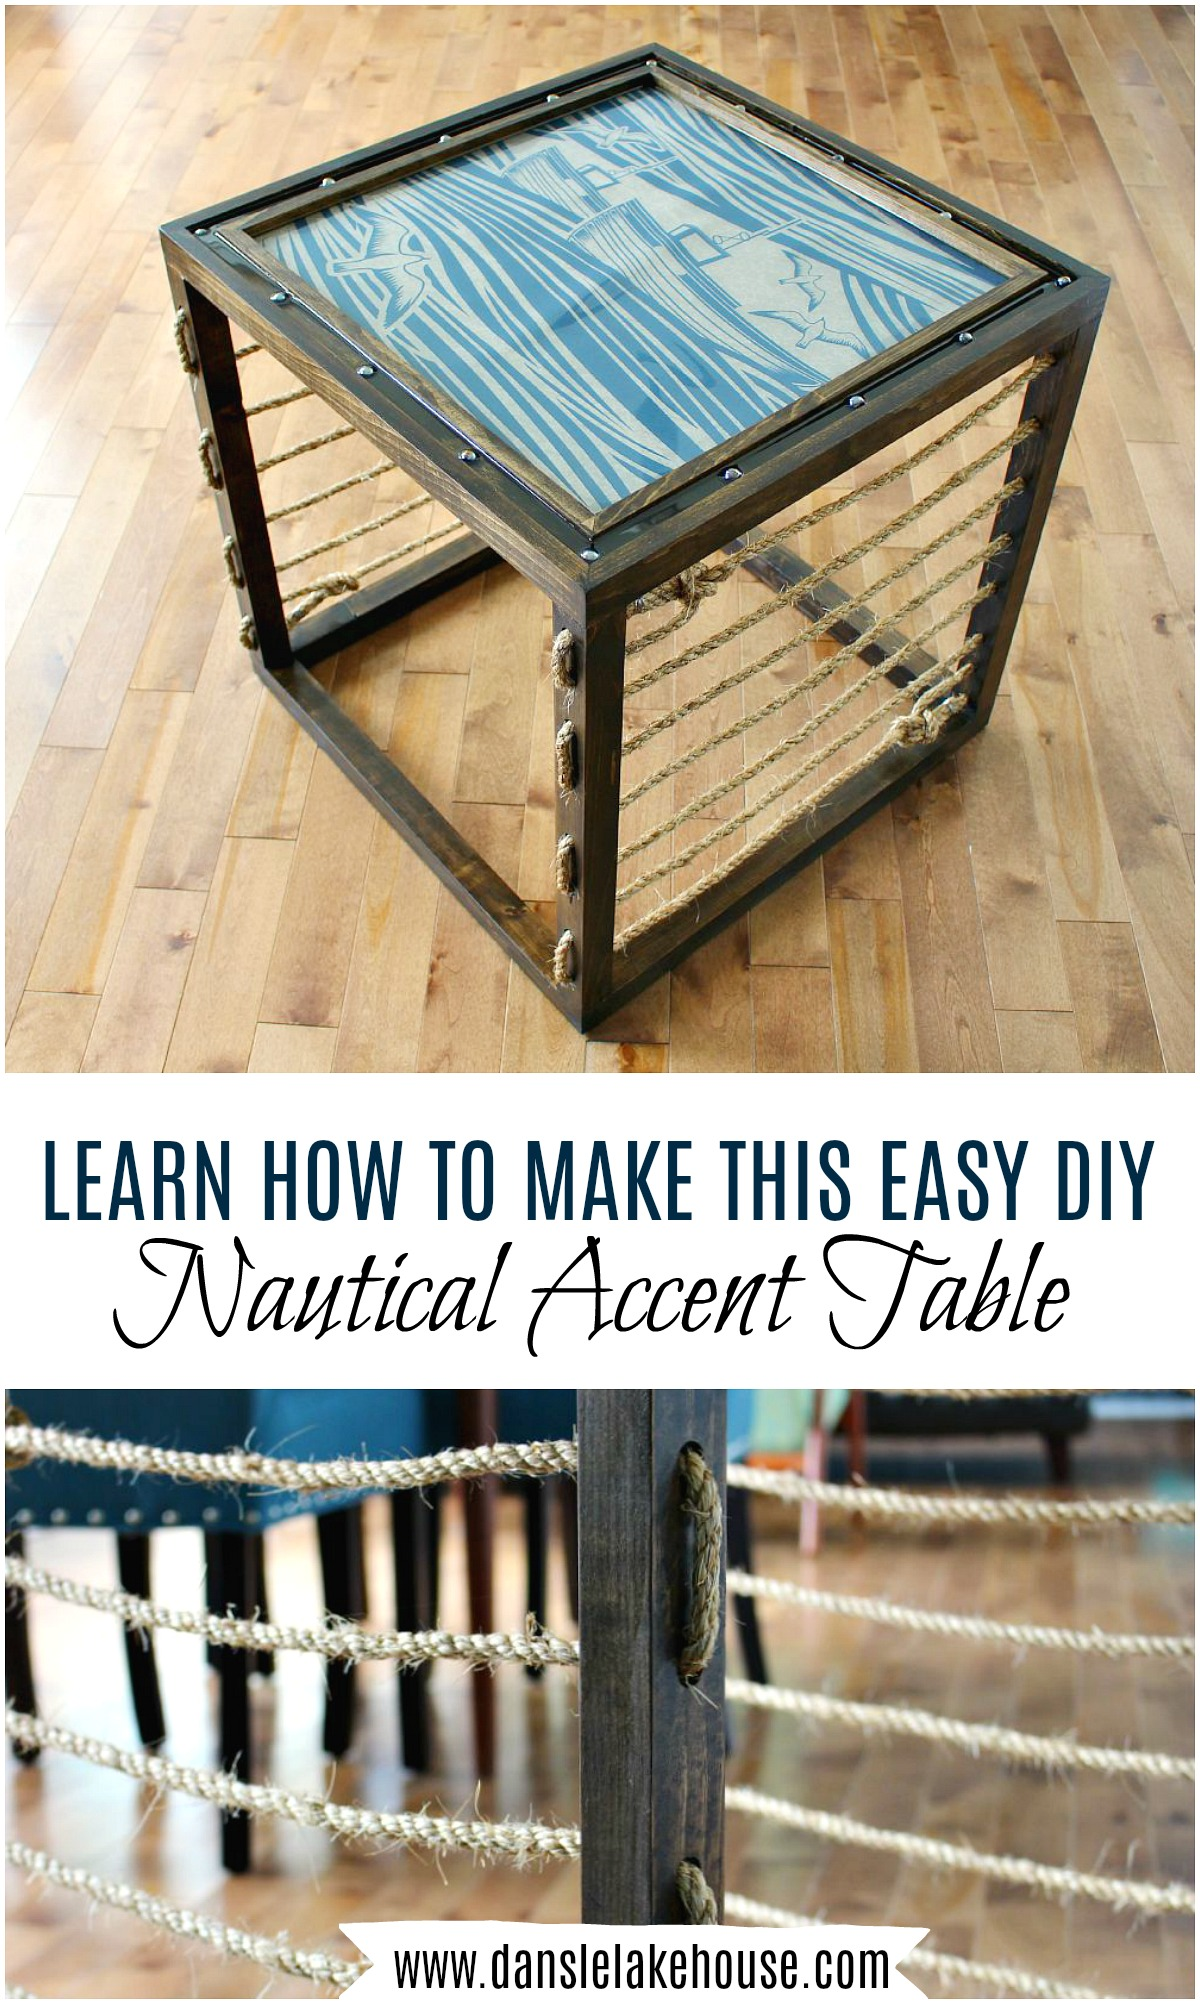 diy nautical accent table dans lakehouse learn how build side room essentials hairpin ott legs baroque barnwood dining top natural cherry end tables light fixtures espresso with